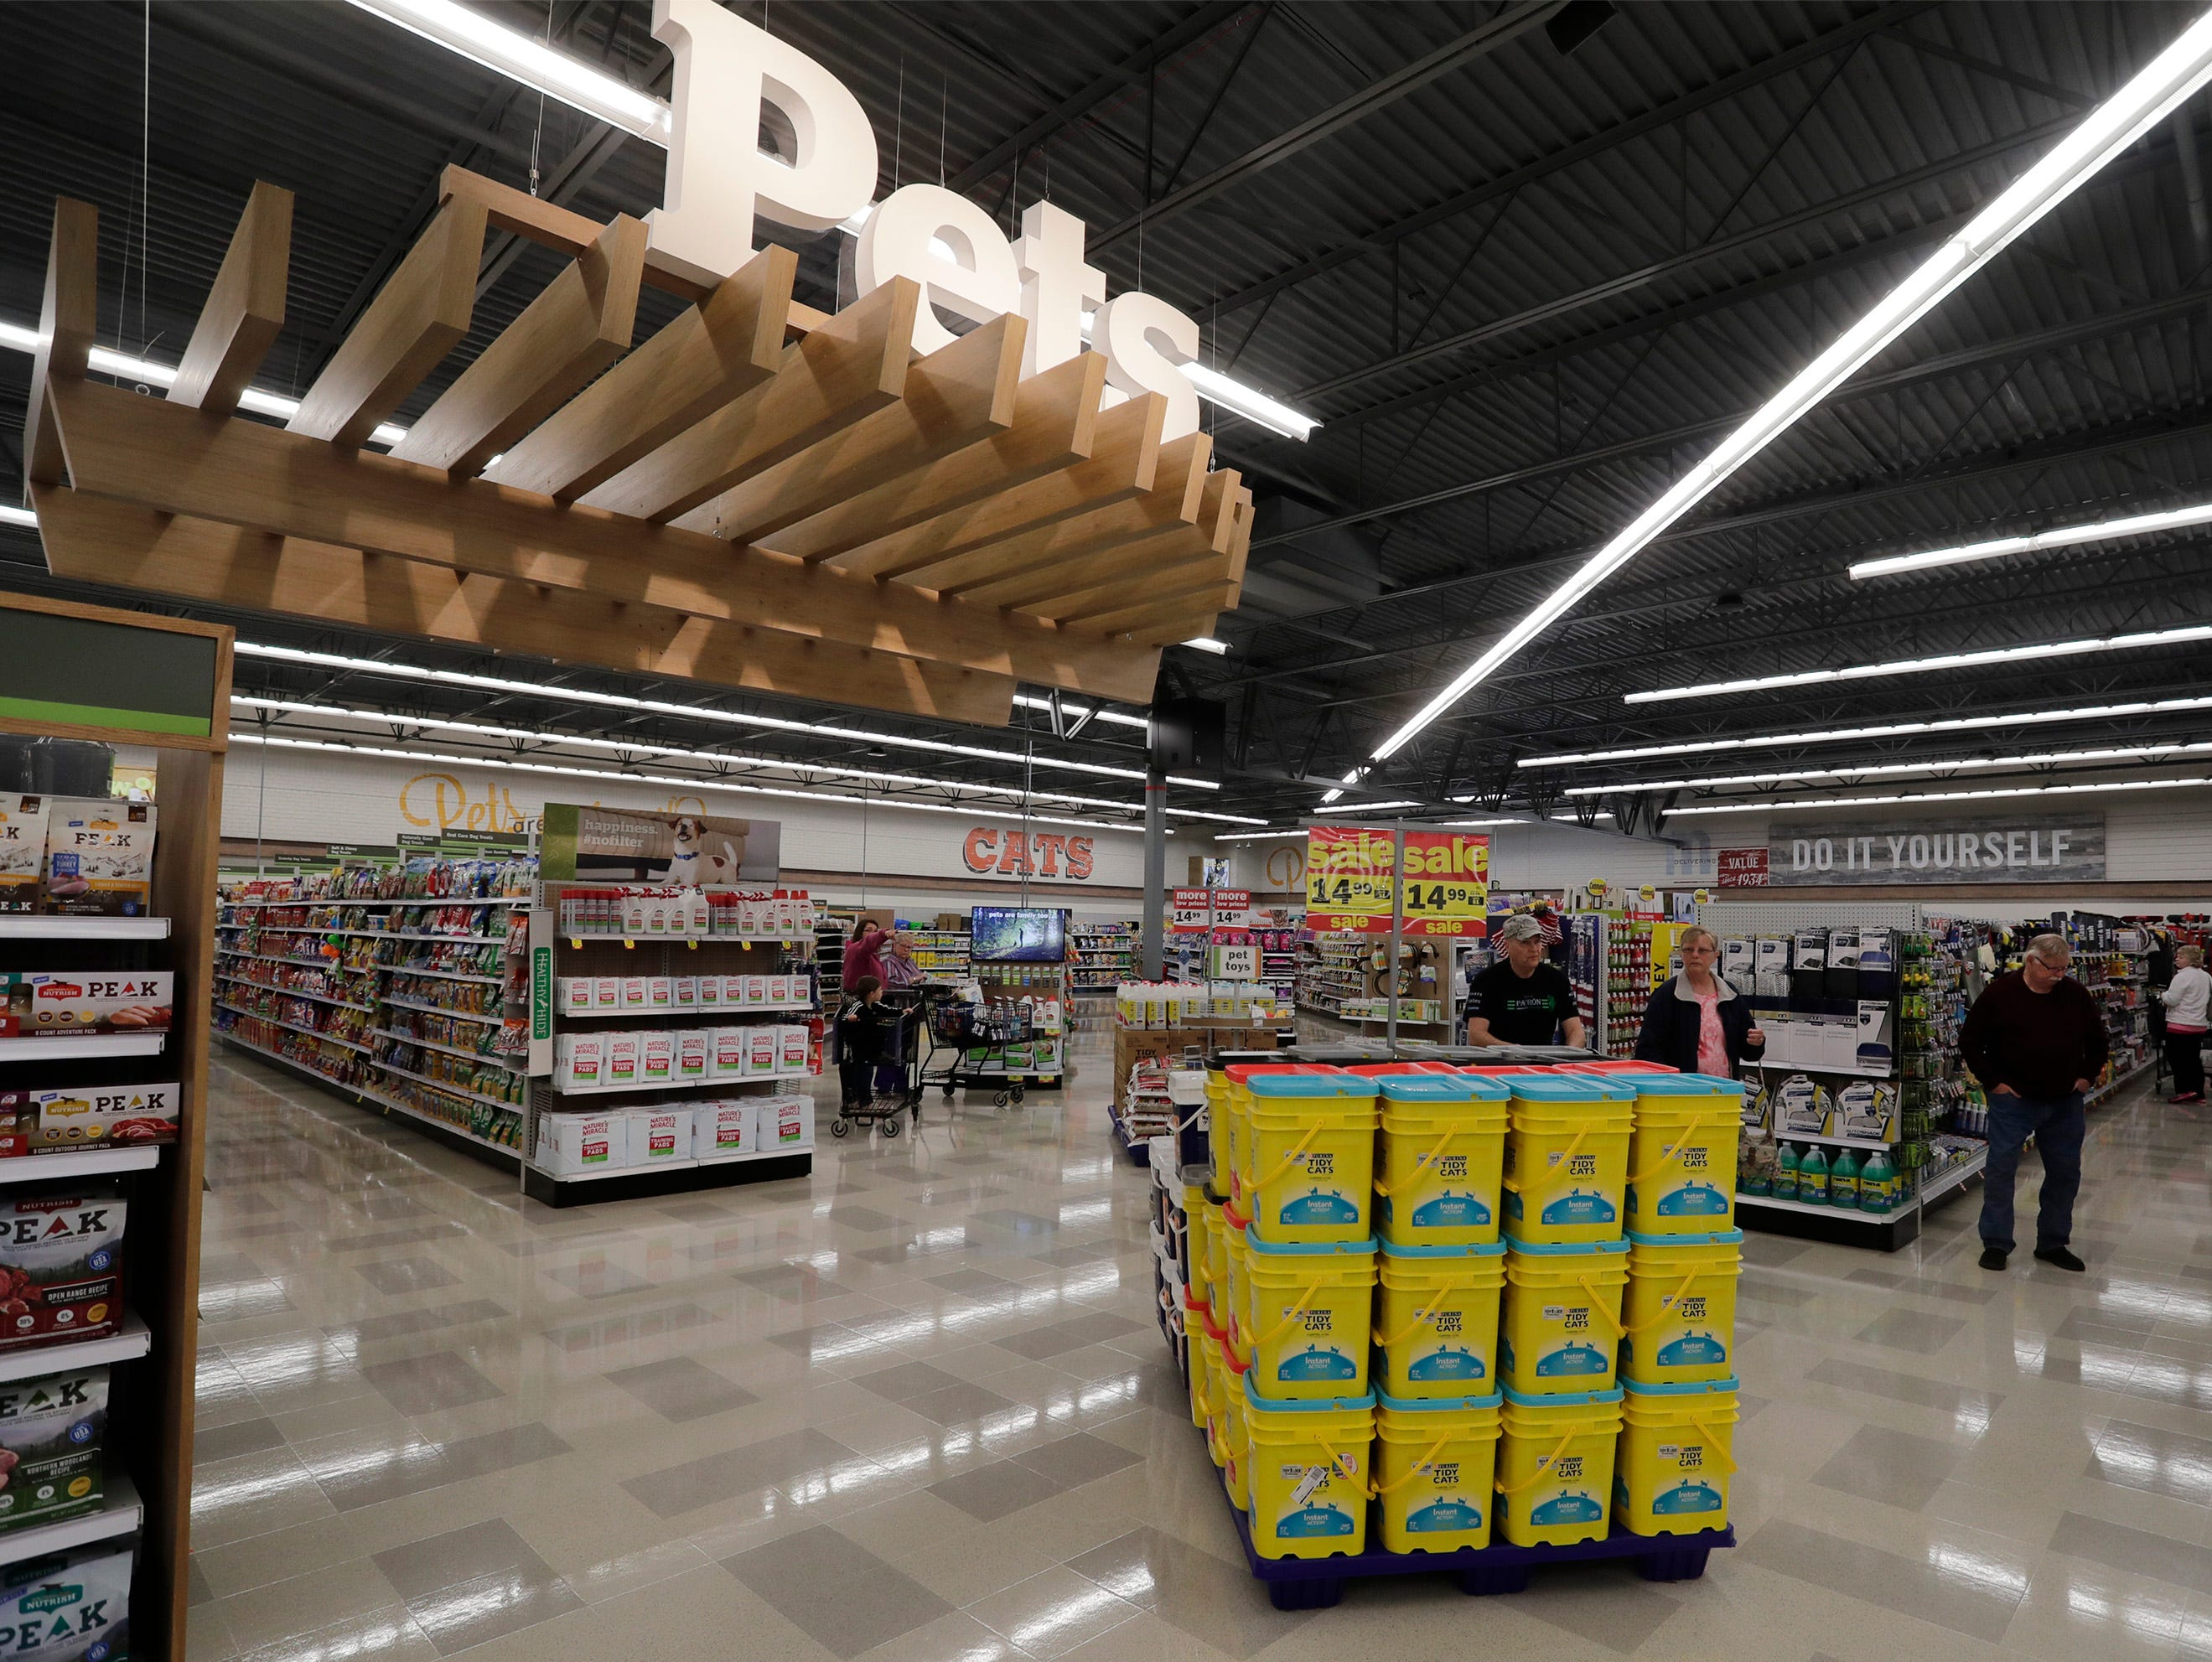 The pets and do it yourself area at Meijer, Thursday April 25, 2019, in Sheboygan, Wis. The 155,000-square-foot supercenter has 300 employees on opening day.